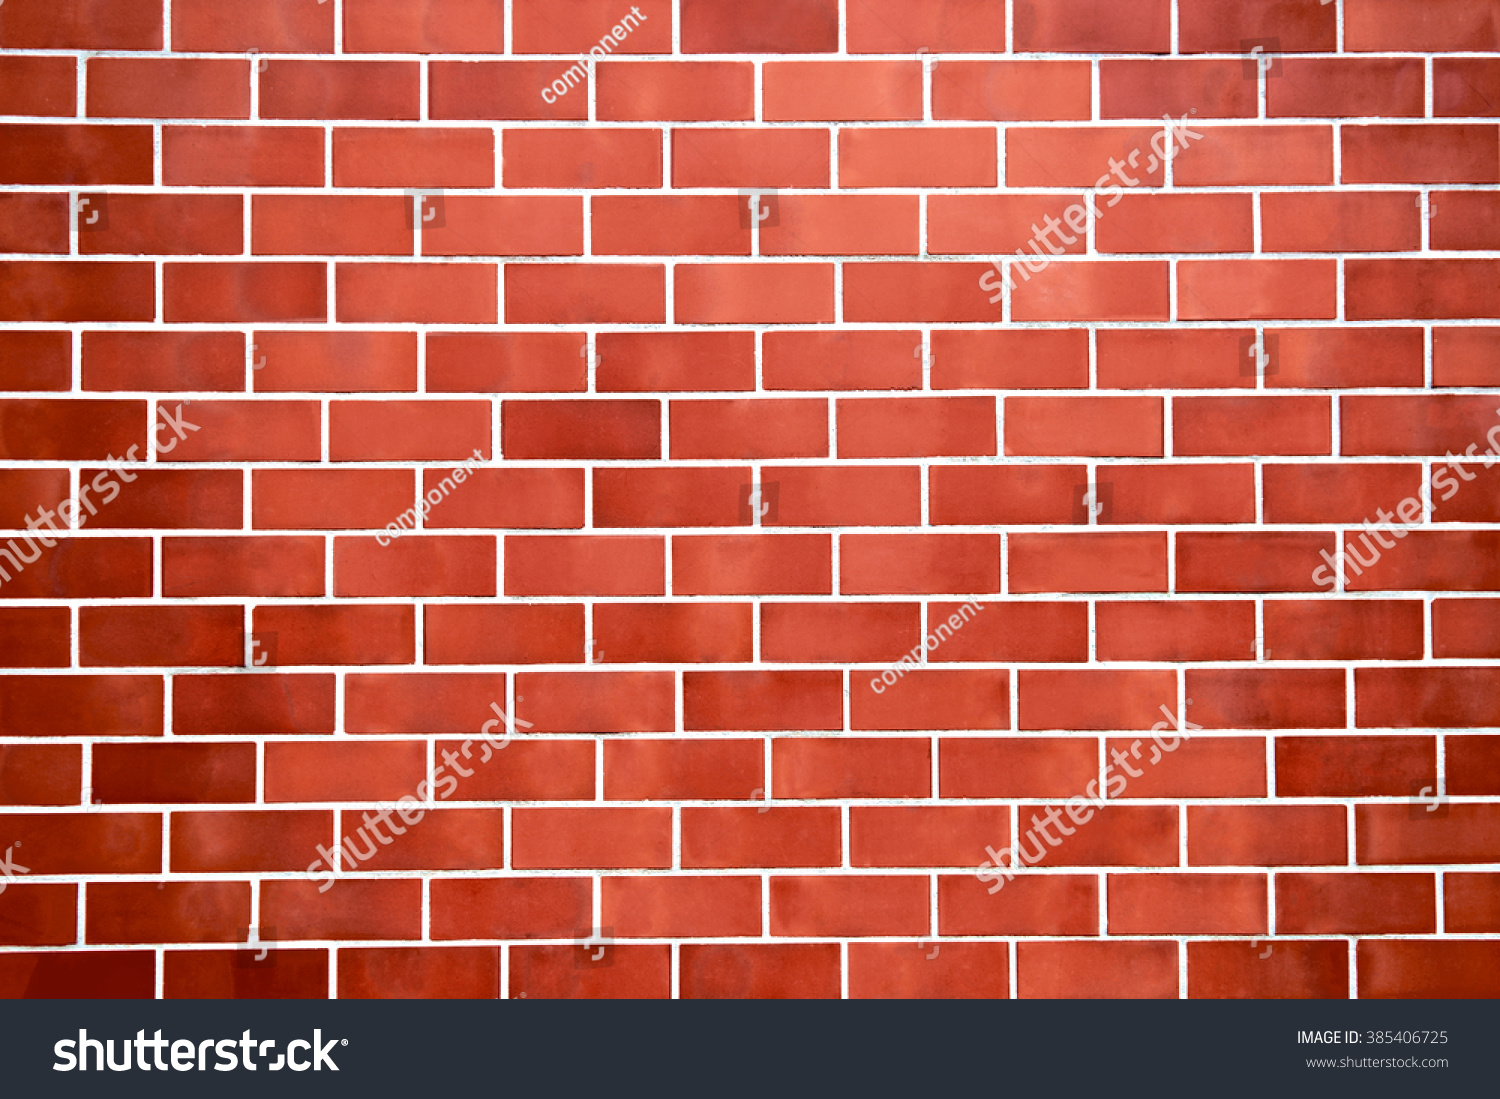 Red New Brick Wall Pattern Background For Architecture Design Front Or Top View